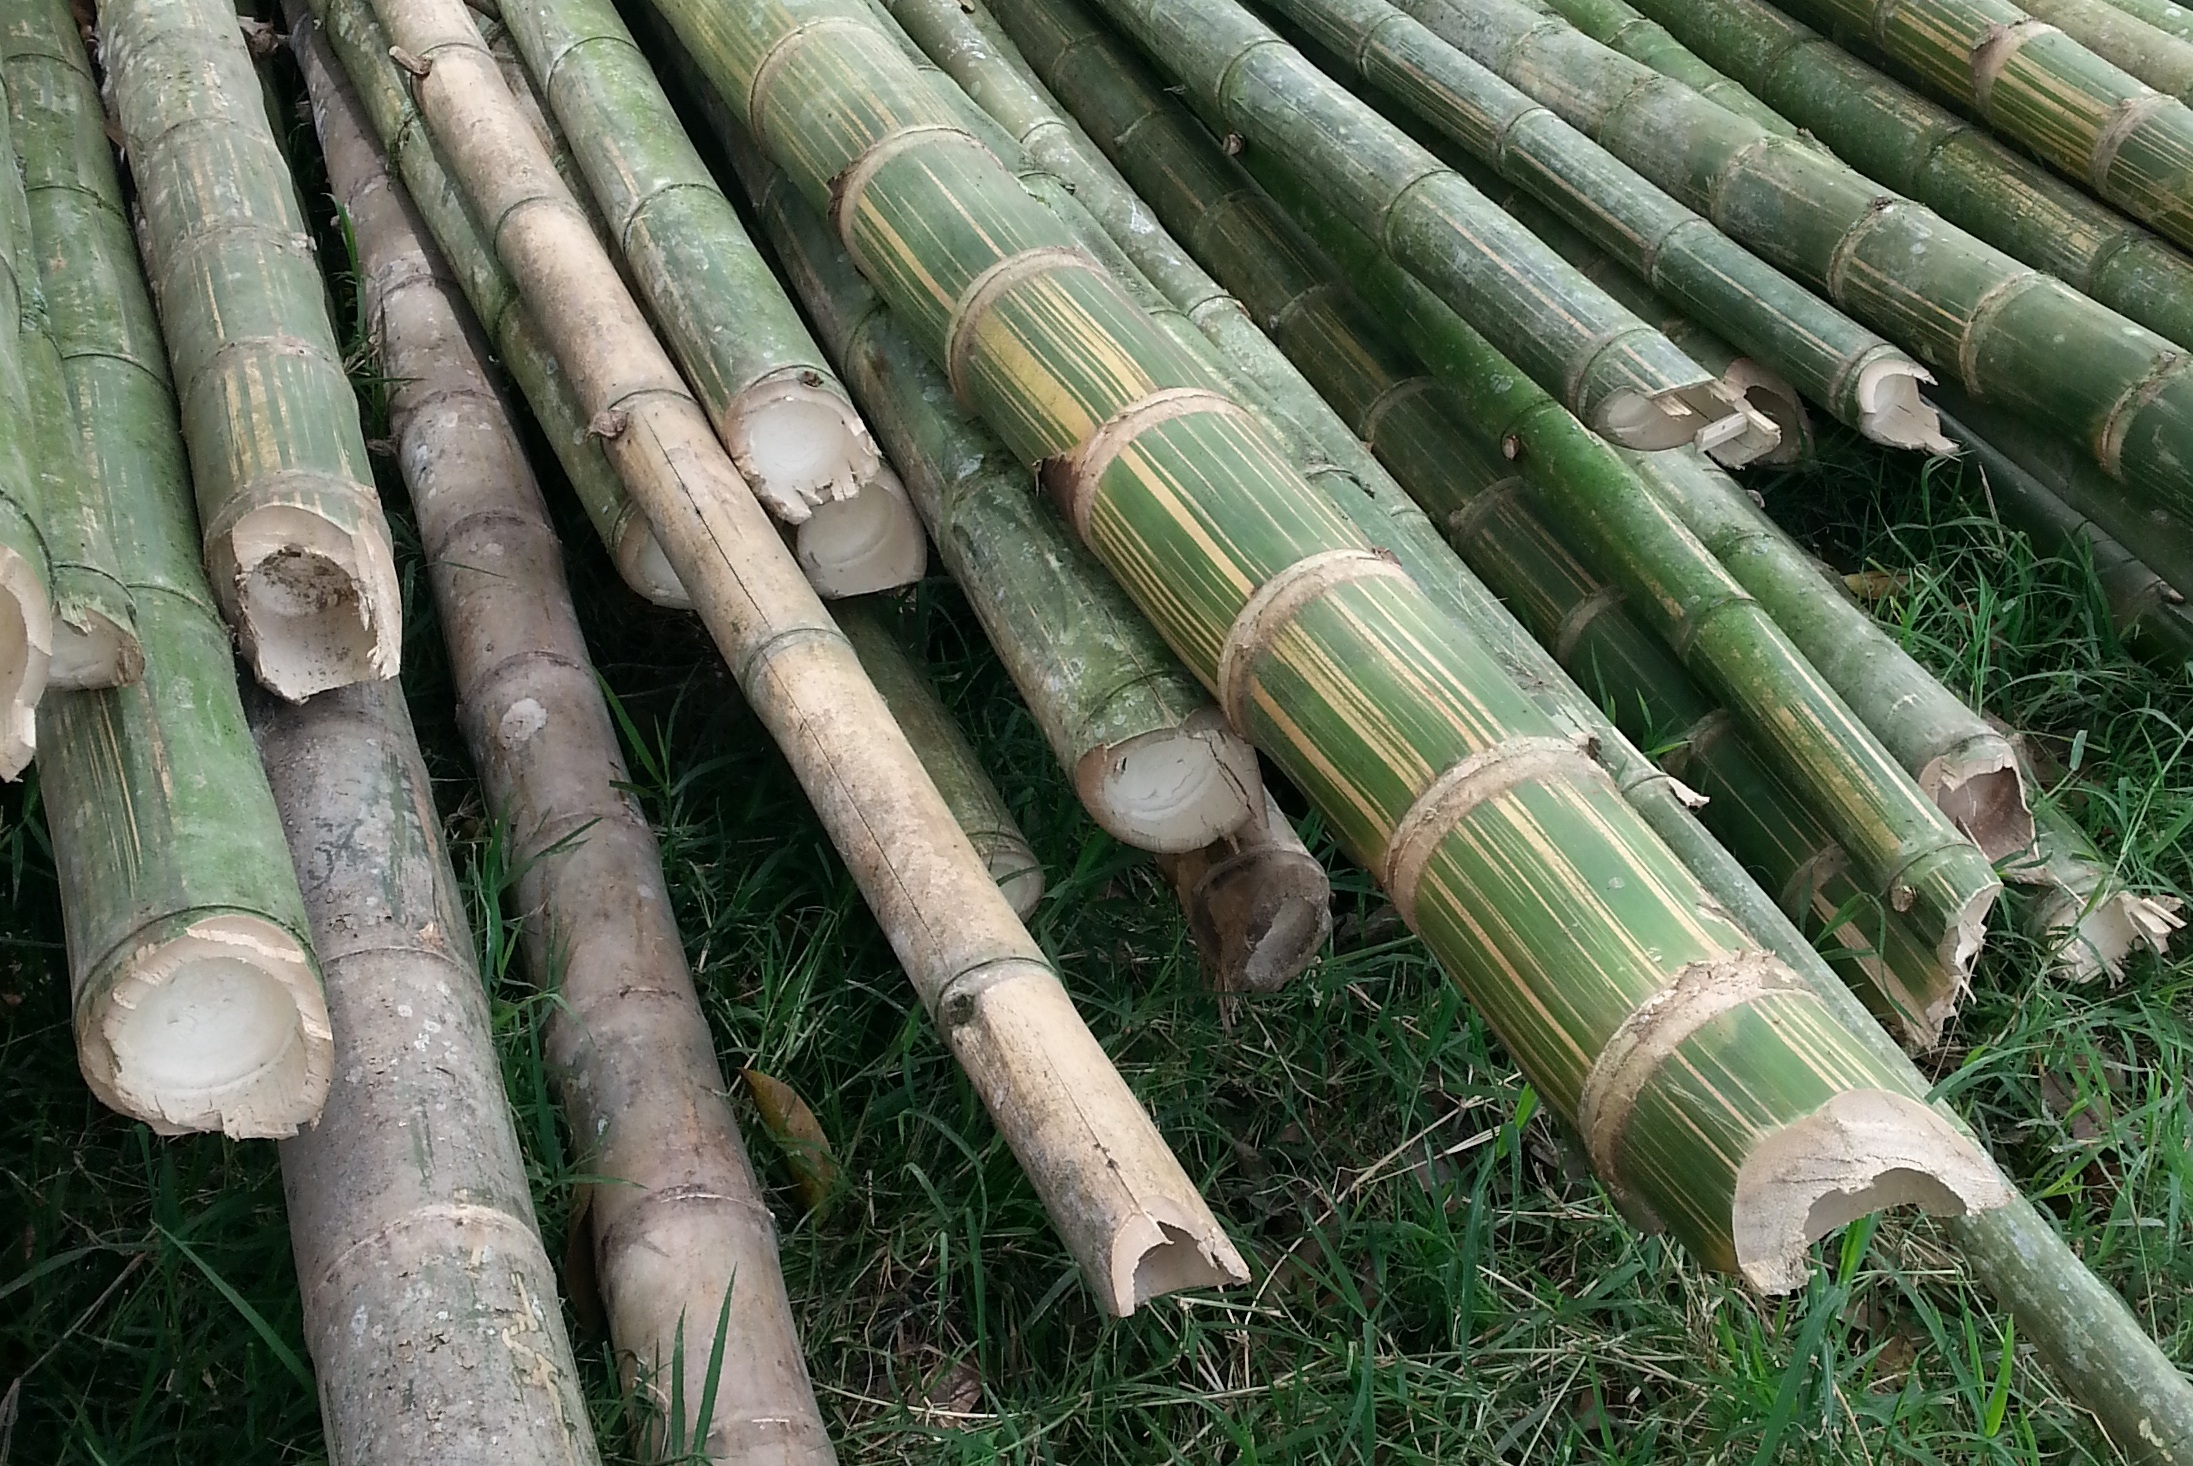 Cool facts... - Bamboo is one of the world's most sustainable resources, of out more than 1000 species, Colombia has over 100, being one of them Guadua (Angustifolia kunth). It is one of the fastest growing plants on the planet. It can be harvested annually and will then regenerate itself from the roots, replacing the crop naturally without the need for replanting or crop rotation. Because bamboo is a grass and not a tree, it can grow a full meter a day and fast maturing, after about 3 or 6 years, depending on the species. Its tensile strength makes it a good construction material, and it is also used for furniture, flooring and textiles, among other things.